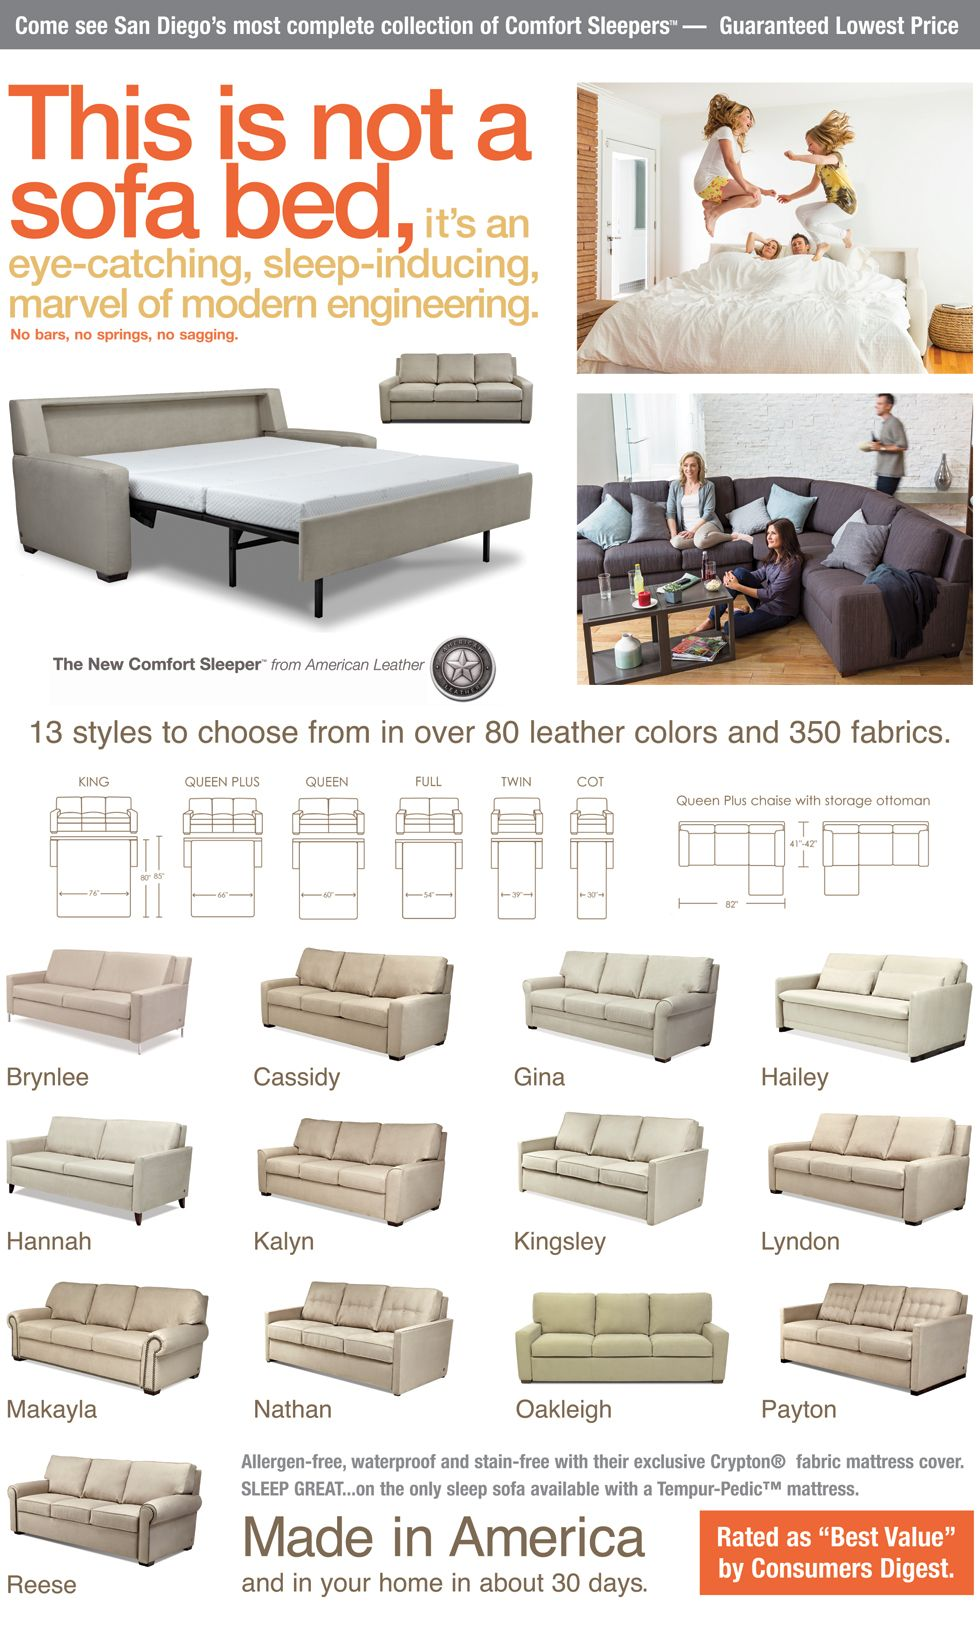 Comfort Sleeper By American Leather Is The Most Luxurious Sofa Sleeper You Can Buy Comfort Sleeper Luxury Sofa Home Decor